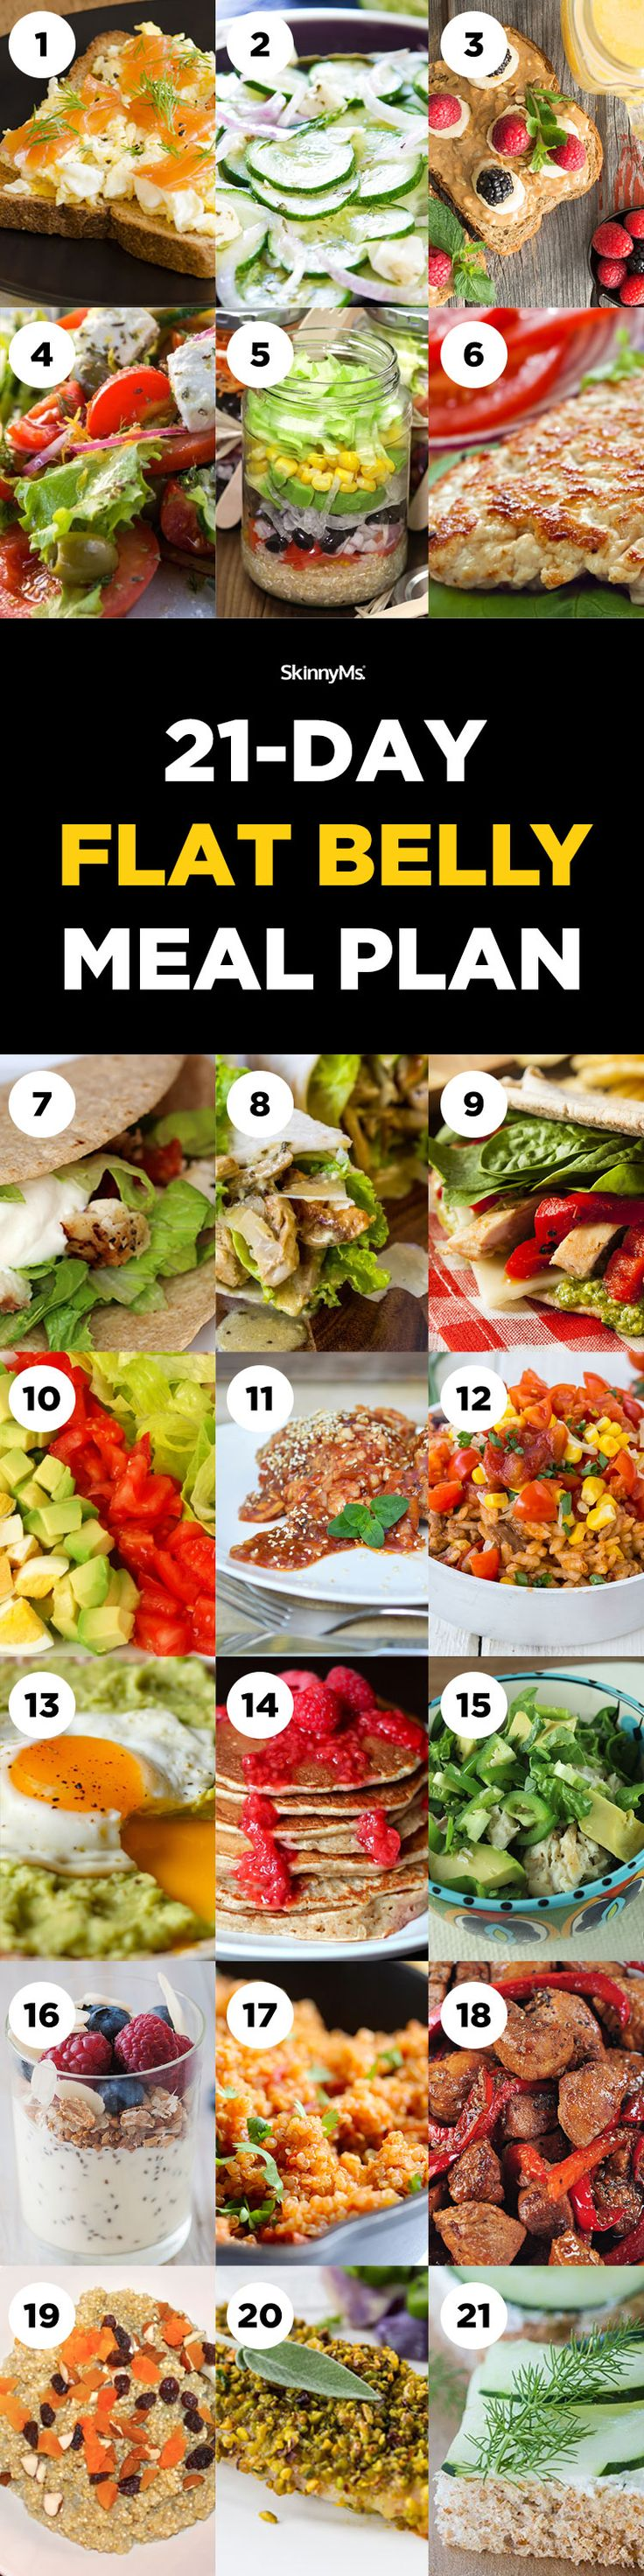 1137 best meal planning recipes images on pinterest cooking food 21 day flat belly meal plan forumfinder Images